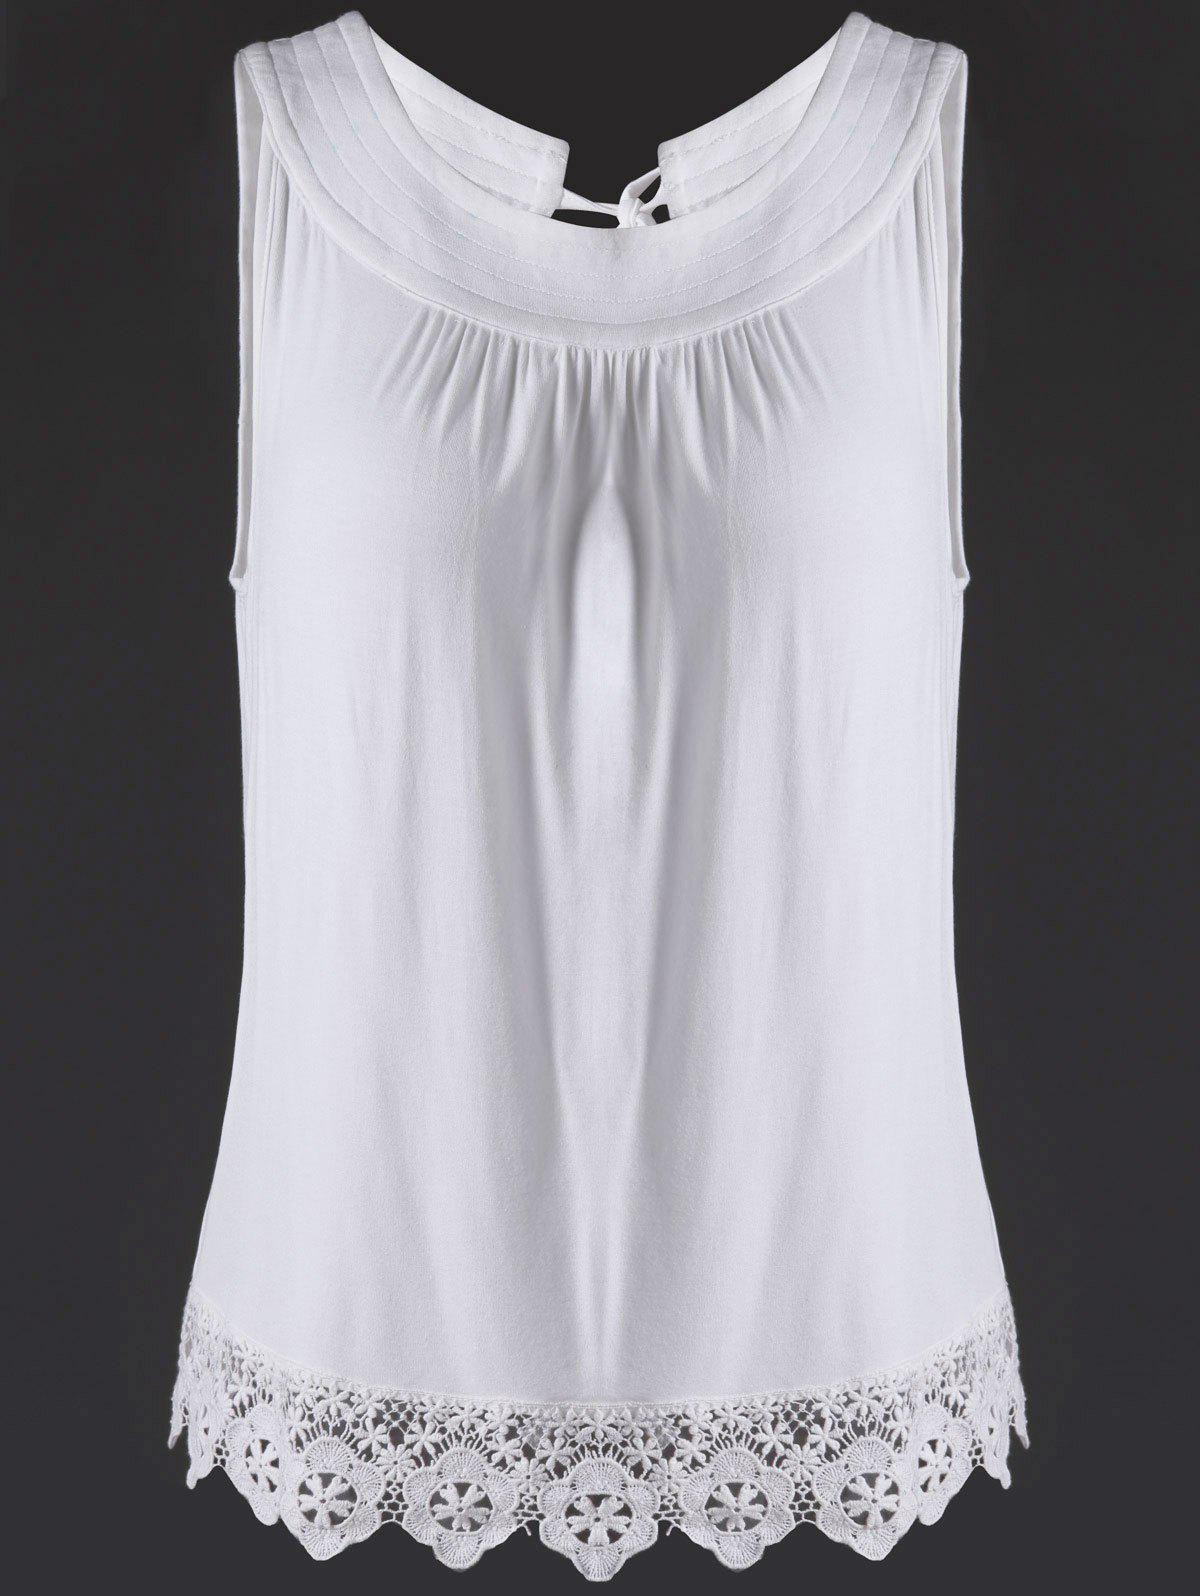 Trendy Jewel Neck Lace Splice Cut Out Tank Top For Women - WHITE XL